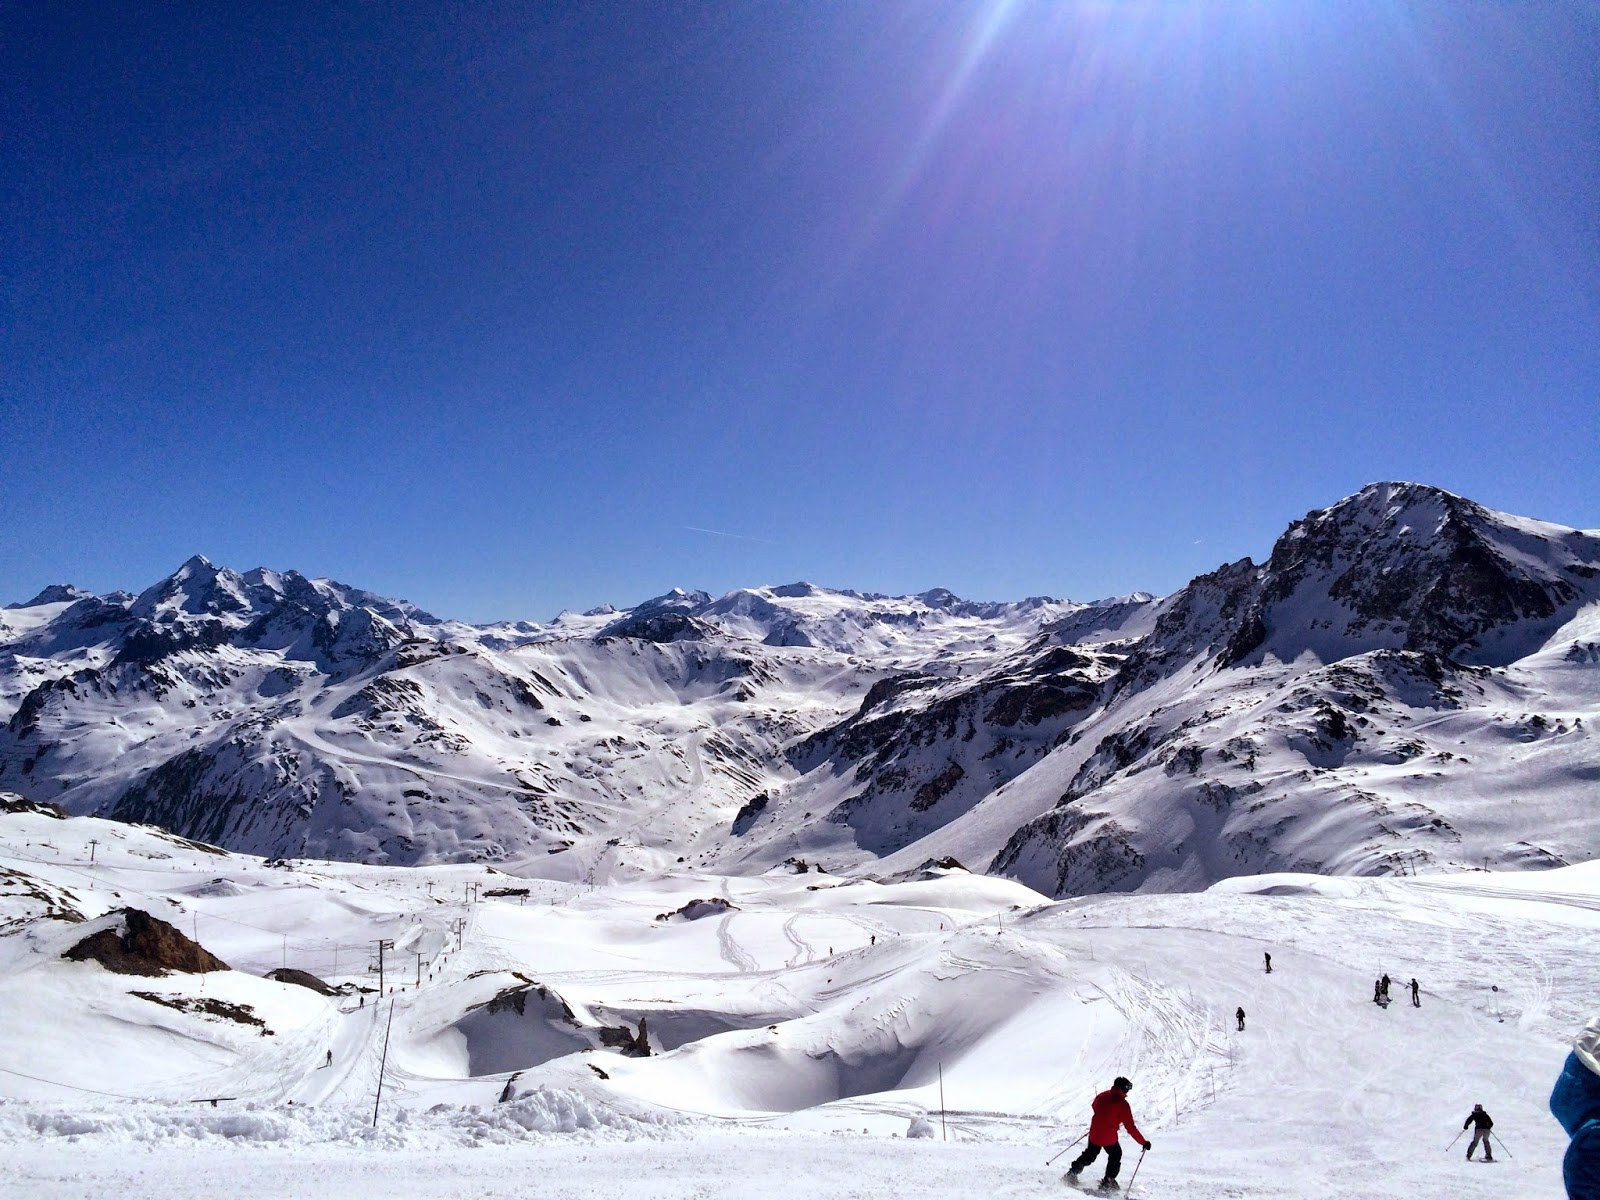 Sun, Snow and Skiing